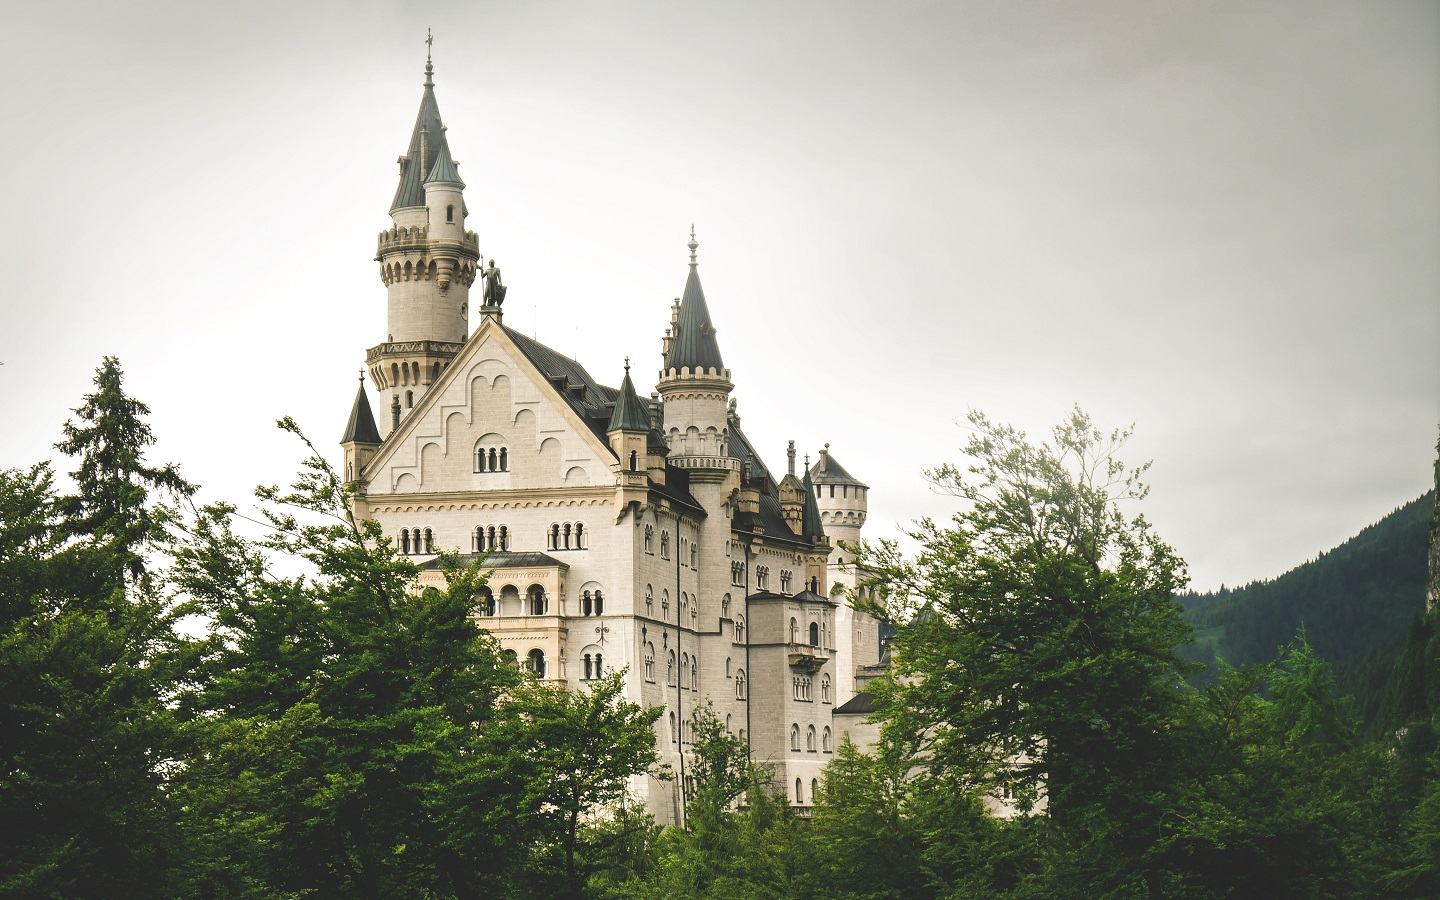 This is not only one of the locations that inspired Disney movies, the castle has a lot of history behind it, too.